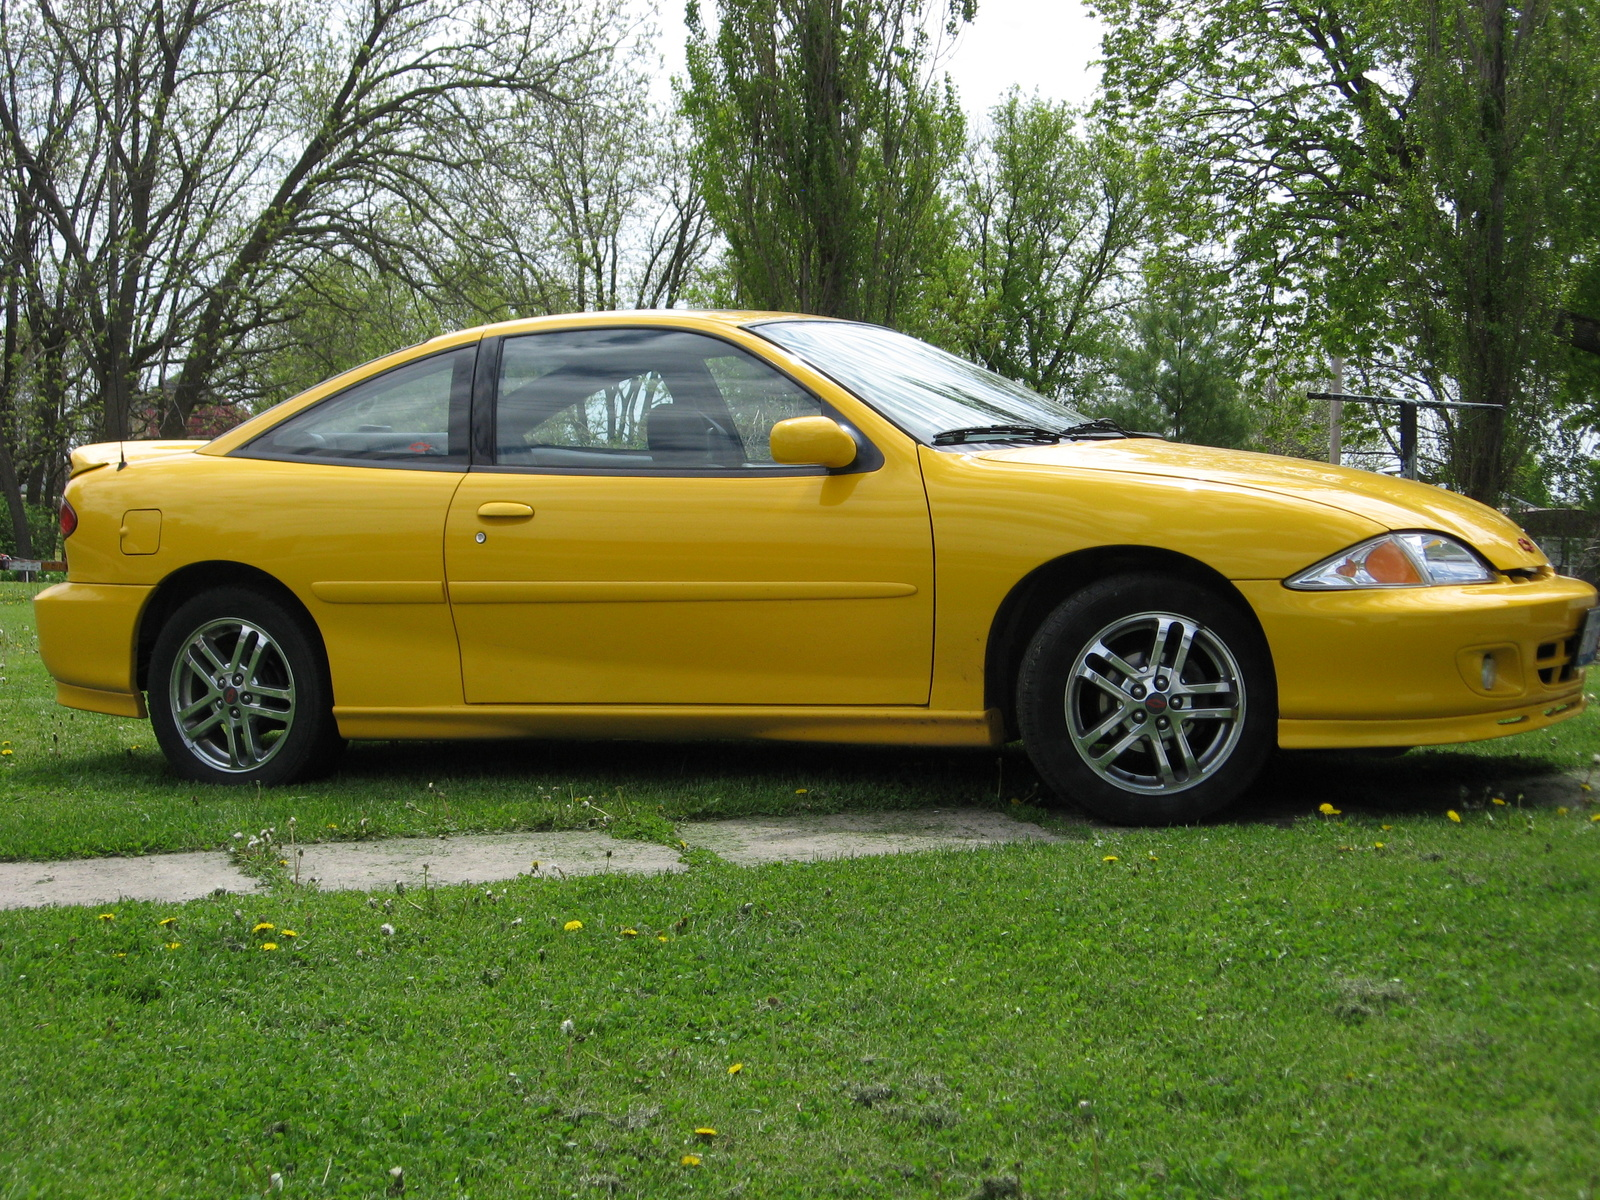 2002 chevrolet cavalier ls sport coupe picture exterior. Cars Review. Best American Auto & Cars Review